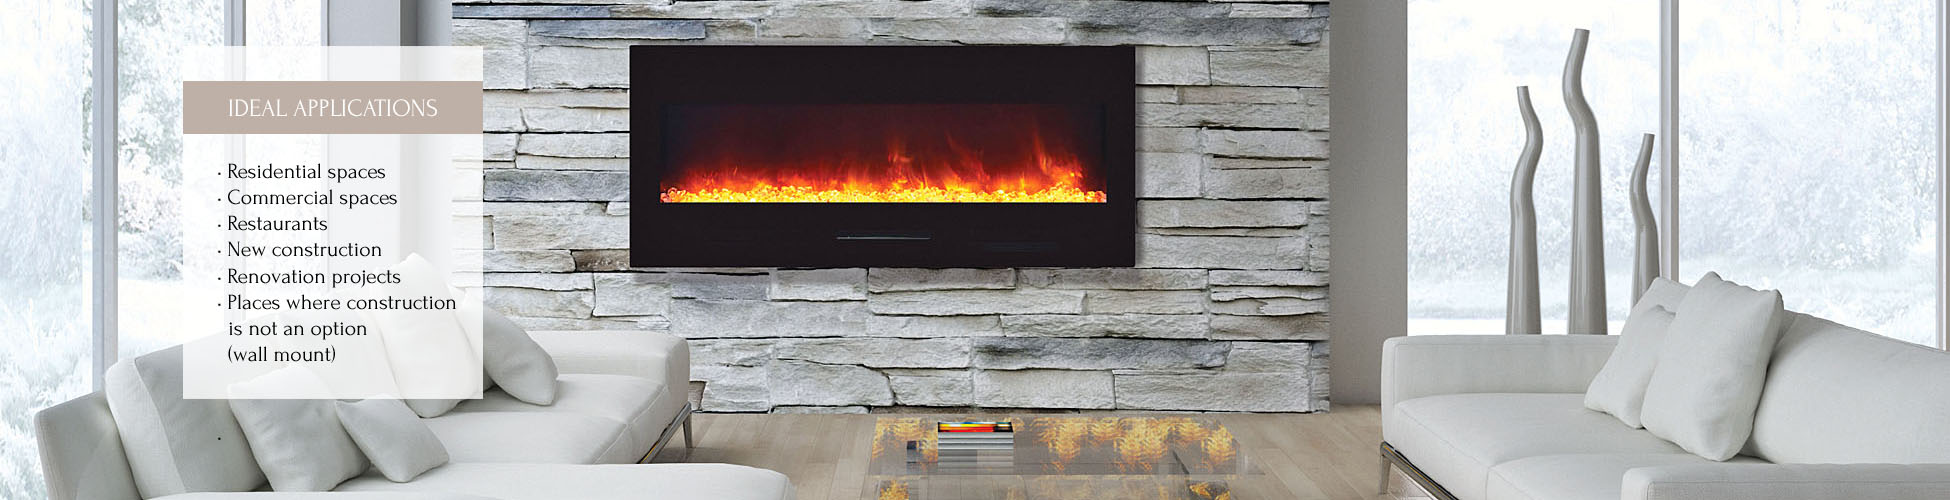 WM-FM-50-BG electric fireplace